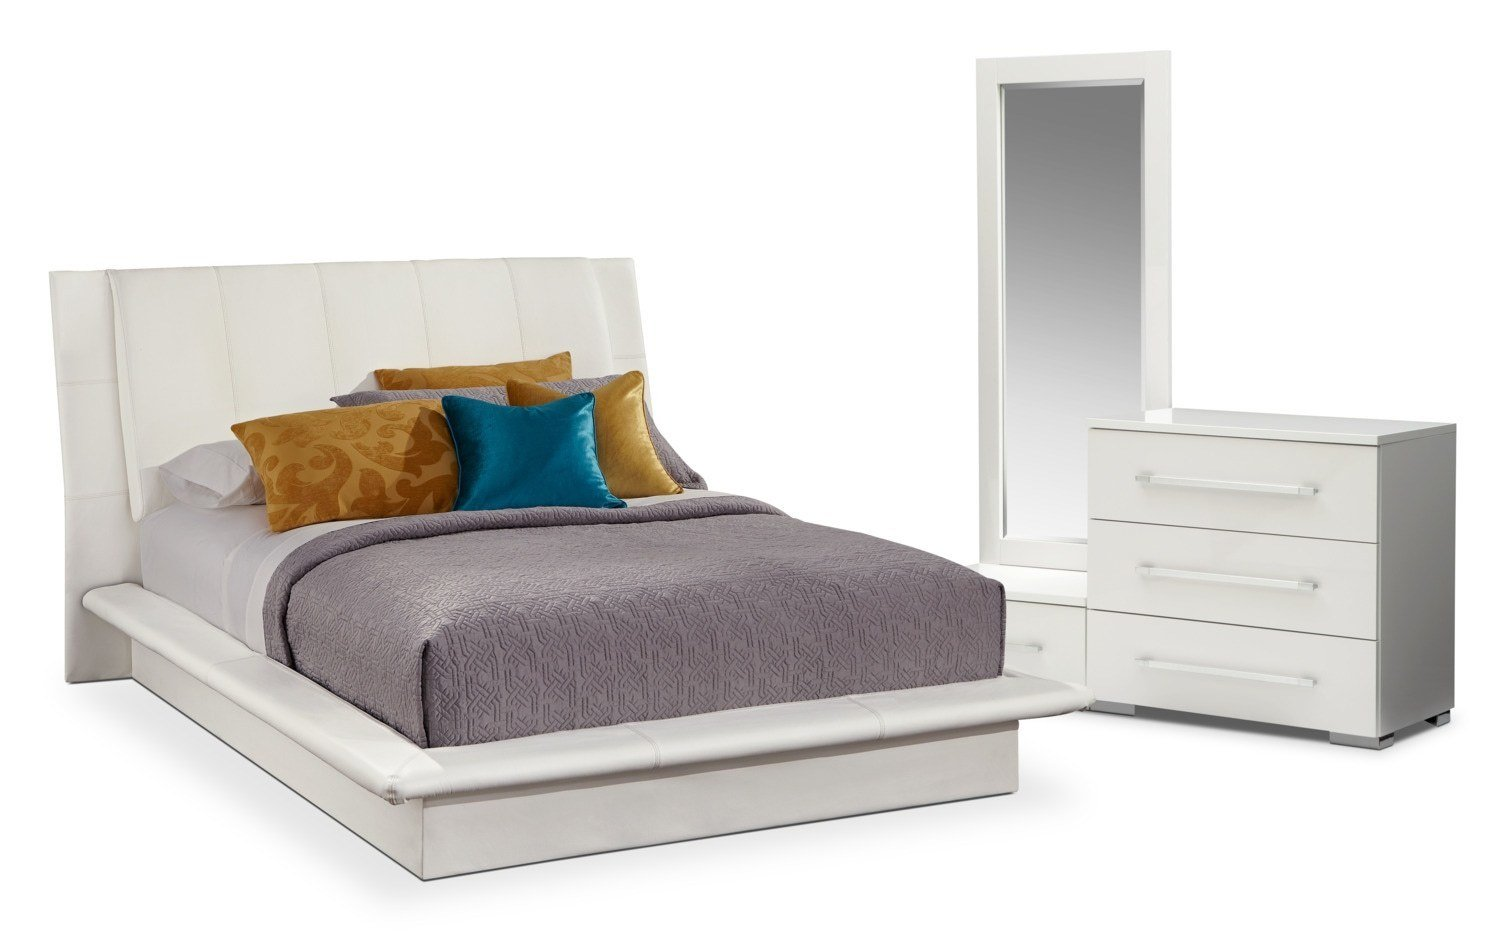 Best Selling Bedroom Furniture American Signature Furniture With Pictures